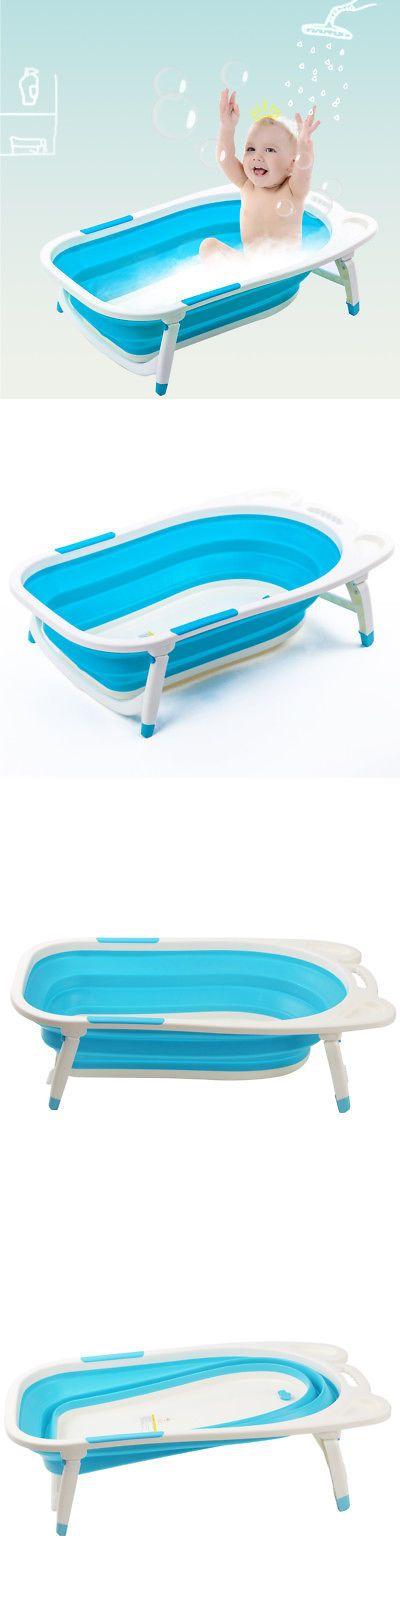 Bath Tubs 113814: Blue Baby Folding Bathtub Infant Collapsible ...